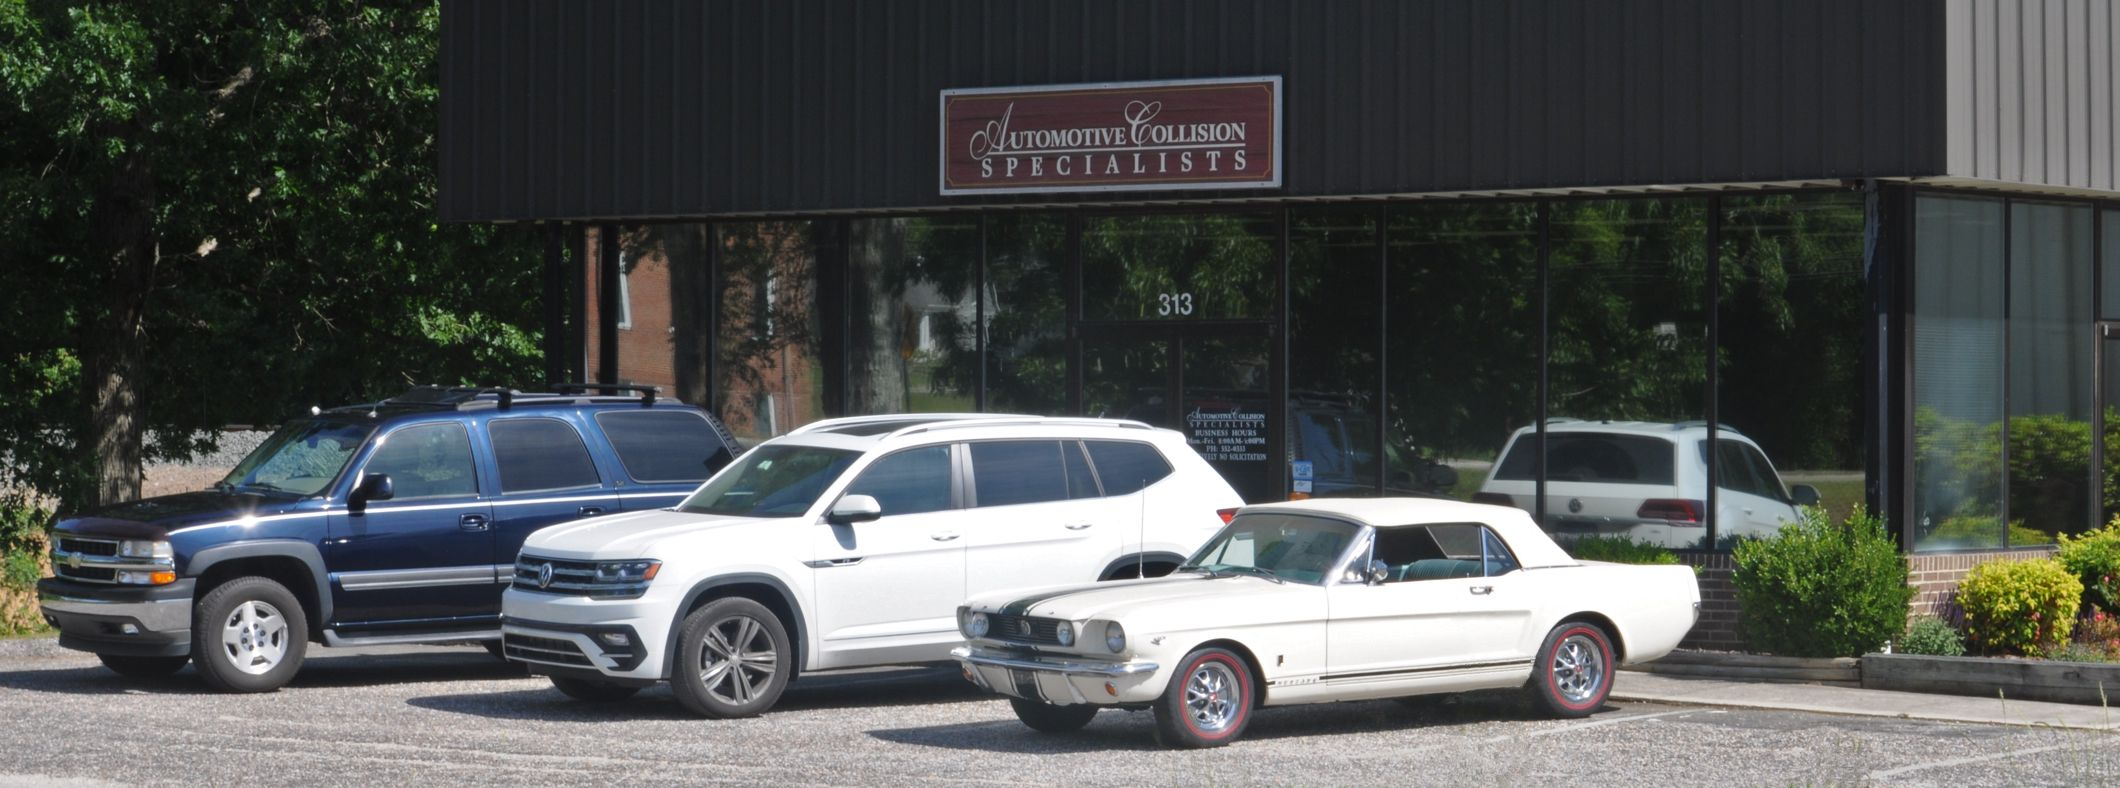 Photo of three cars that have been repaired or restored in front of Automotive Collision Specialists body shop.